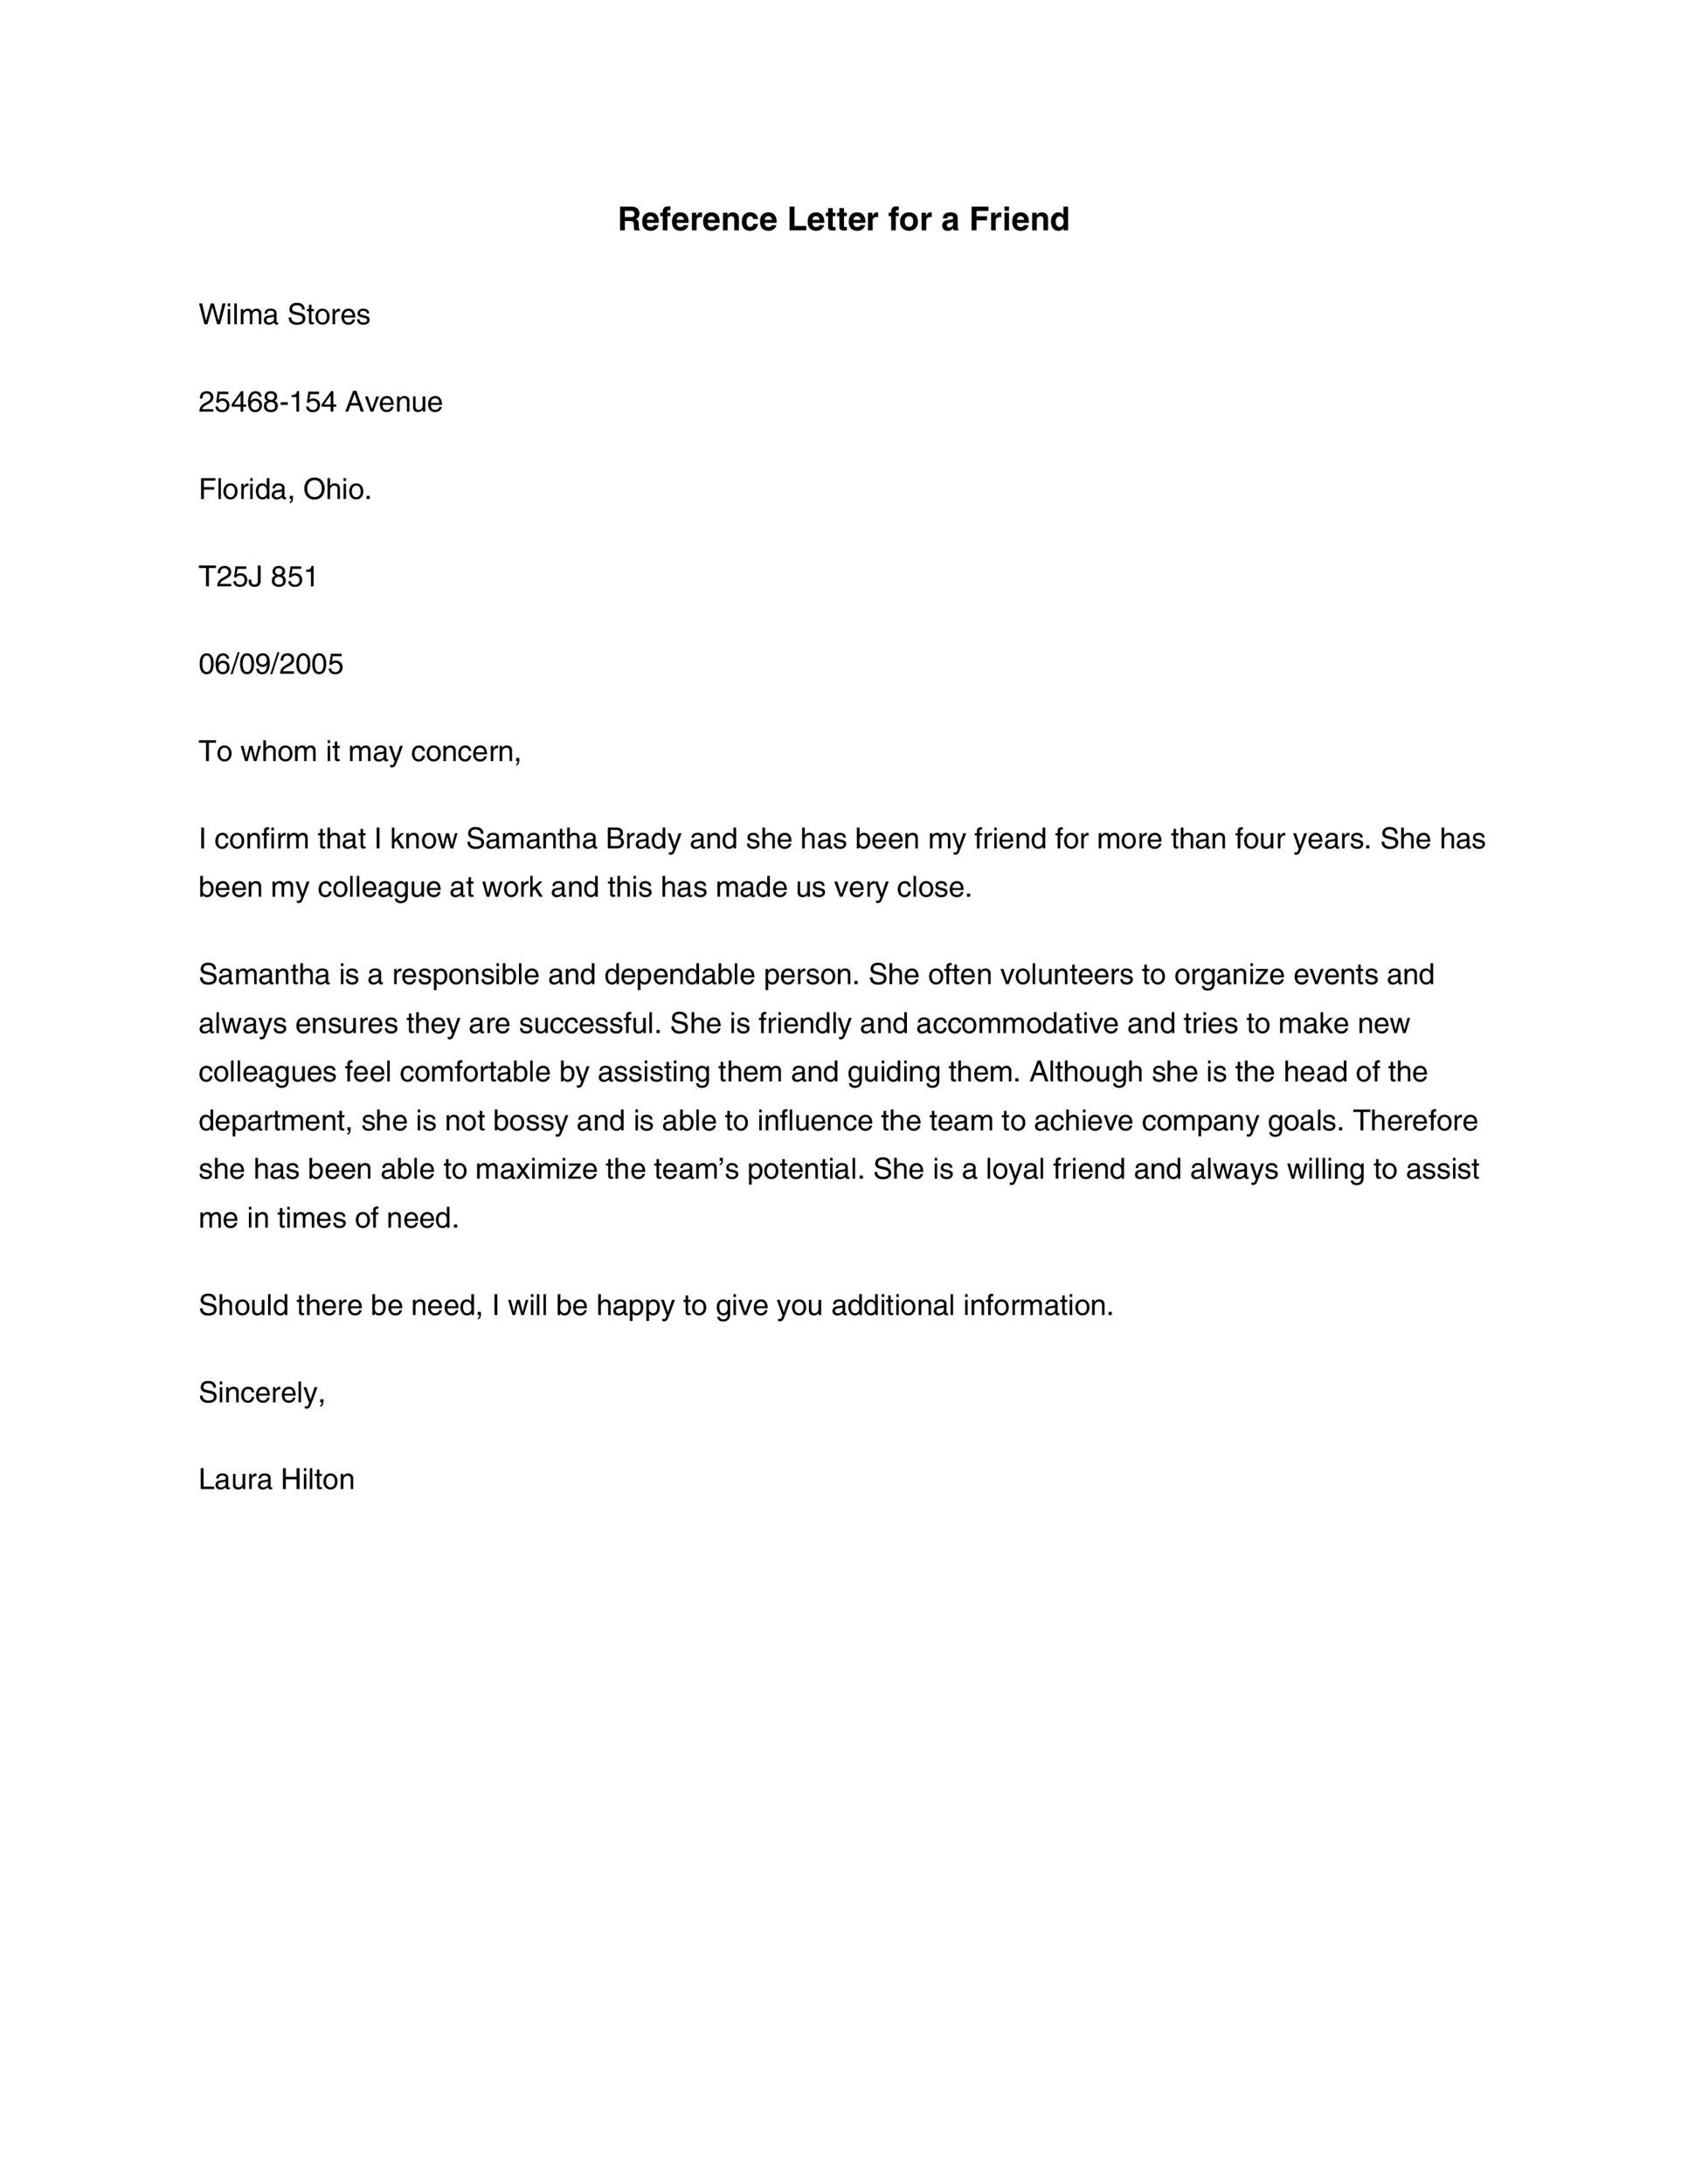 character letter for a friend 40  Awesome Personal / Character Reference Letter Templates [FREE]